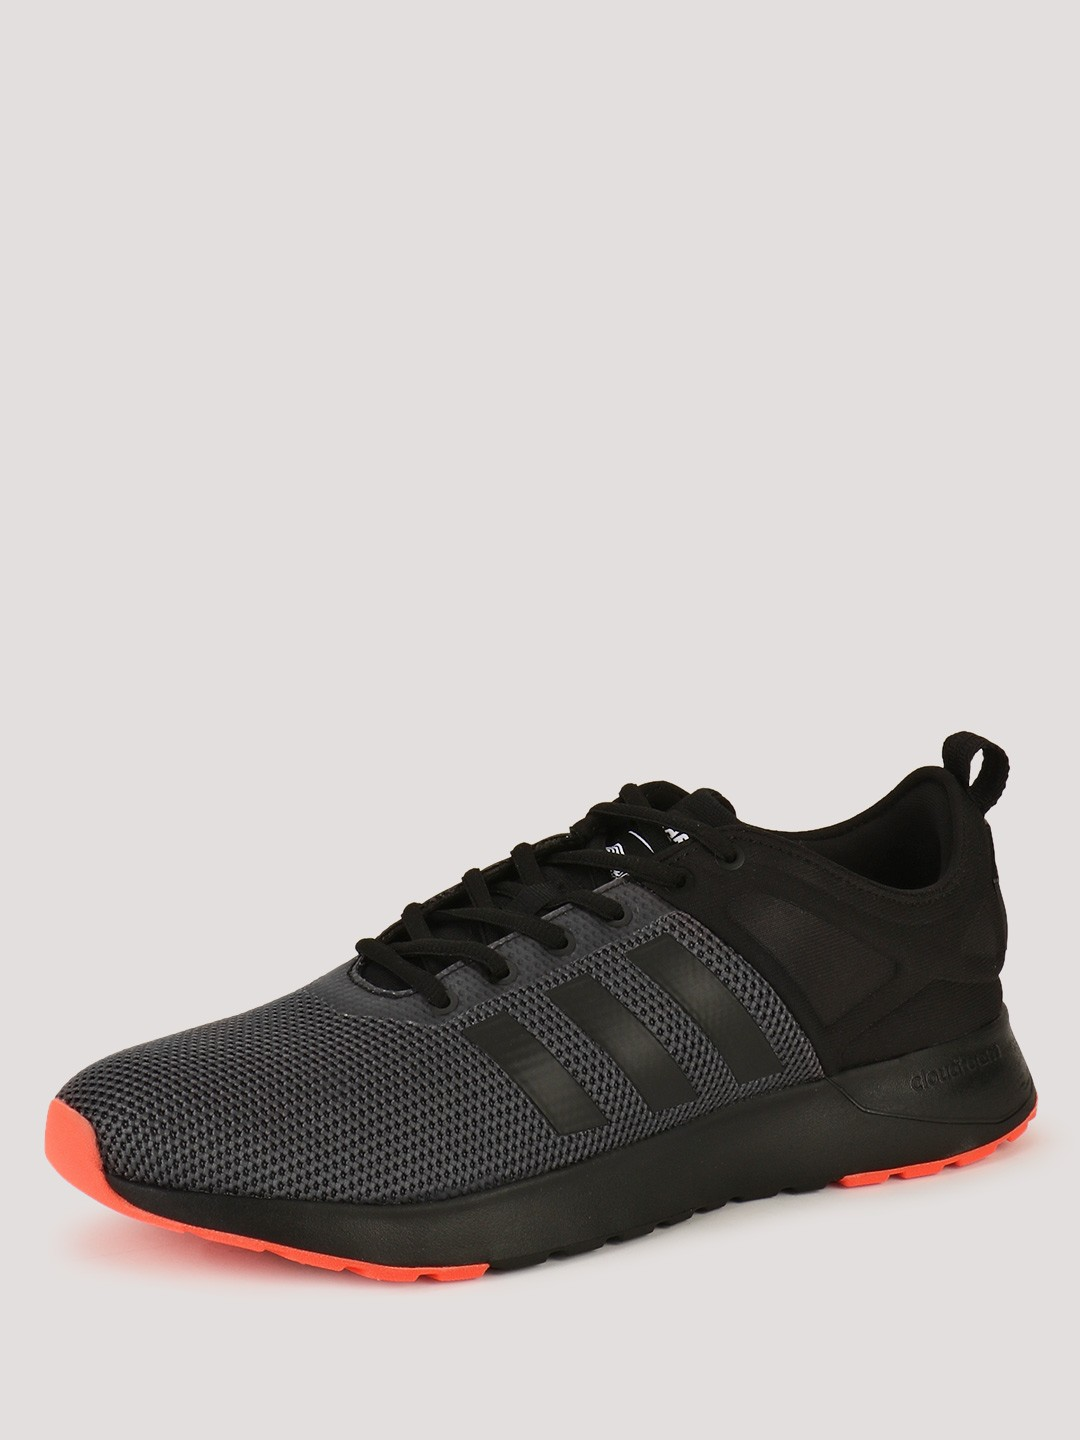 buy adidas neo super racer star wars sneakers with. Black Bedroom Furniture Sets. Home Design Ideas